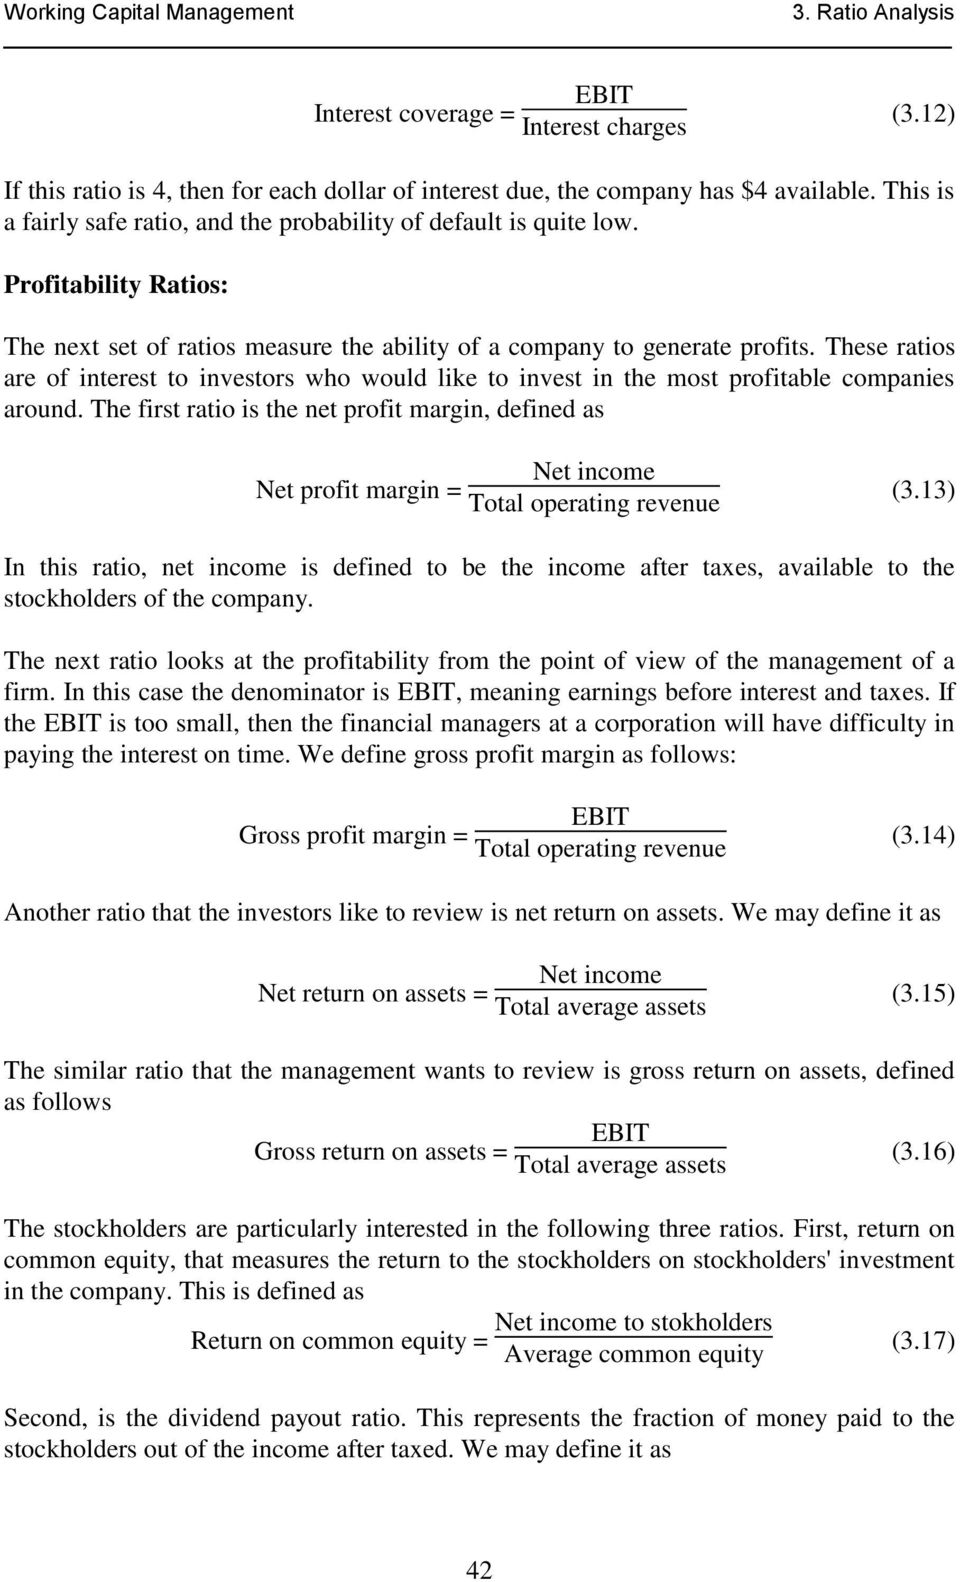 3. RATIO ANALYSIS. 3.1 Balance Sheet Model of a Firm - PDF